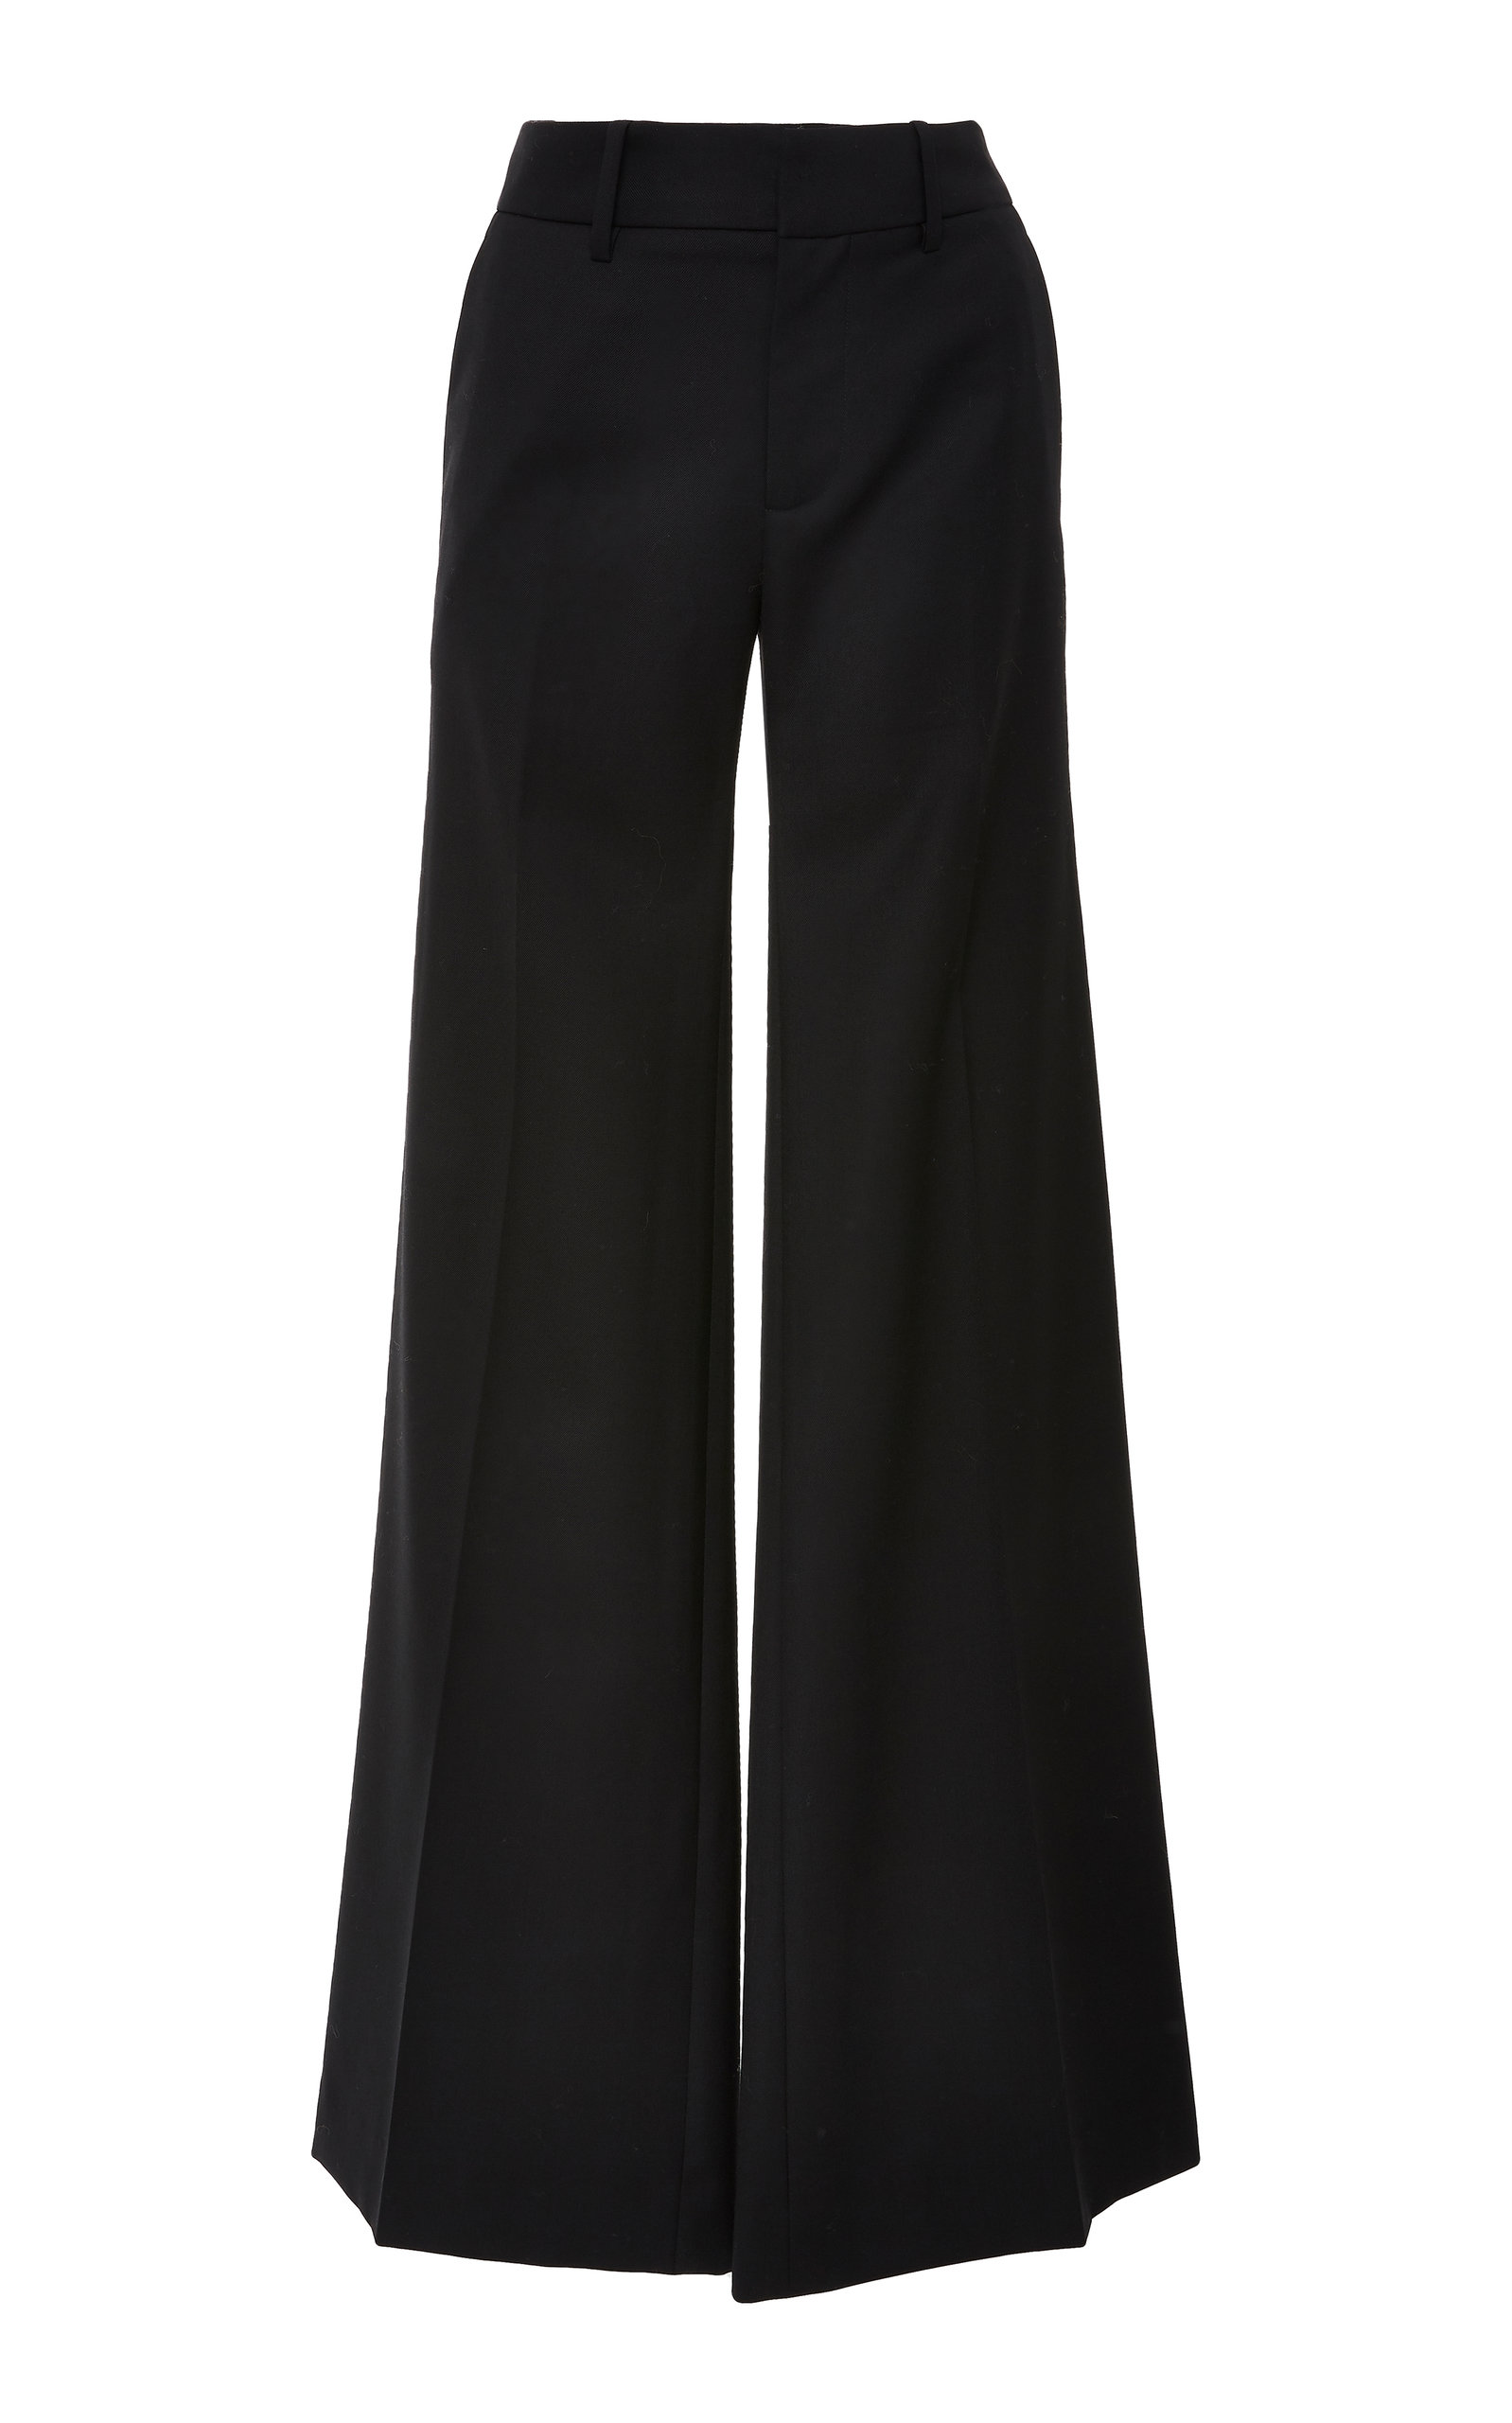 Irene Virgin Wool Twill Flared Pants - Black Size 0